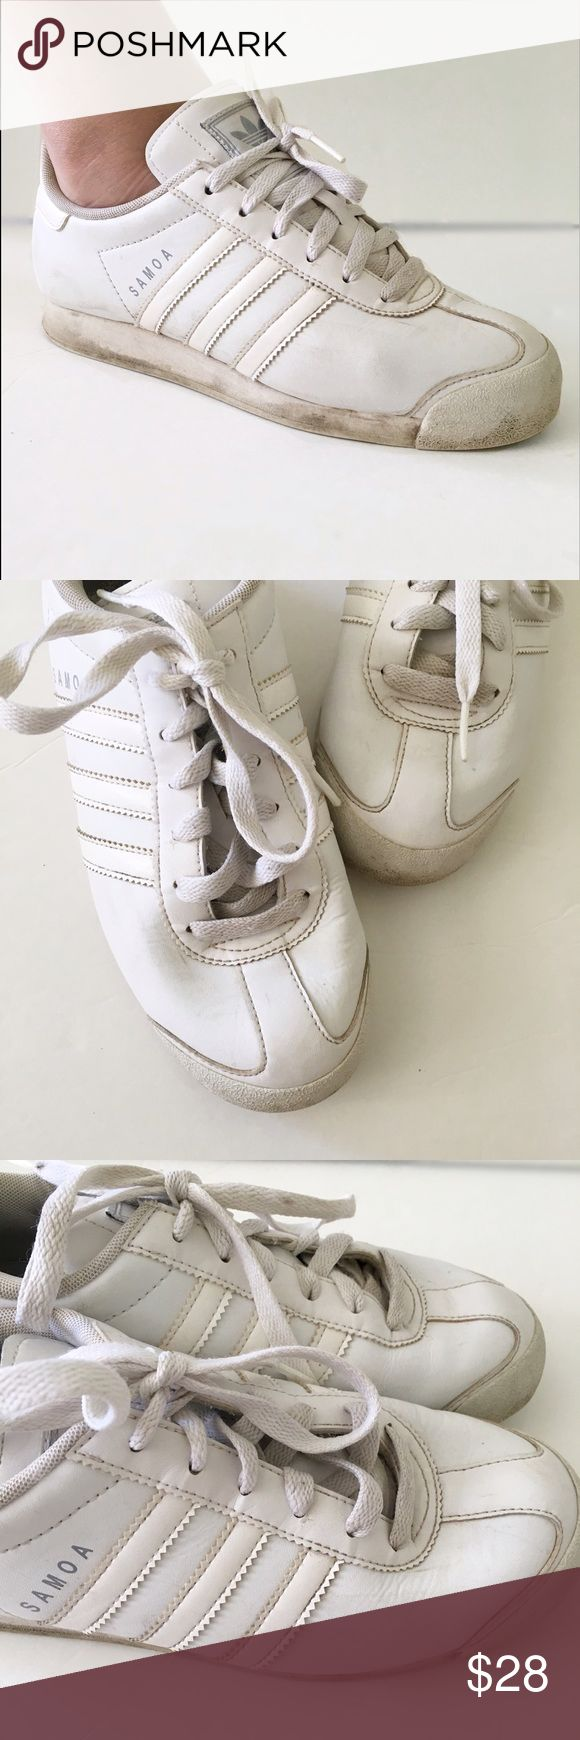 Adidas Soma Shoes Adidas soma shoes. They have a very retro look. They are worn but this have life left in them. They fit on the smaller end of a 6, almost a 5 1/2.   ⭐️10% off 2+ bundle  ⭐️Size 6 ⭐️Smoke free home adidas Shoes Athletic Shoes